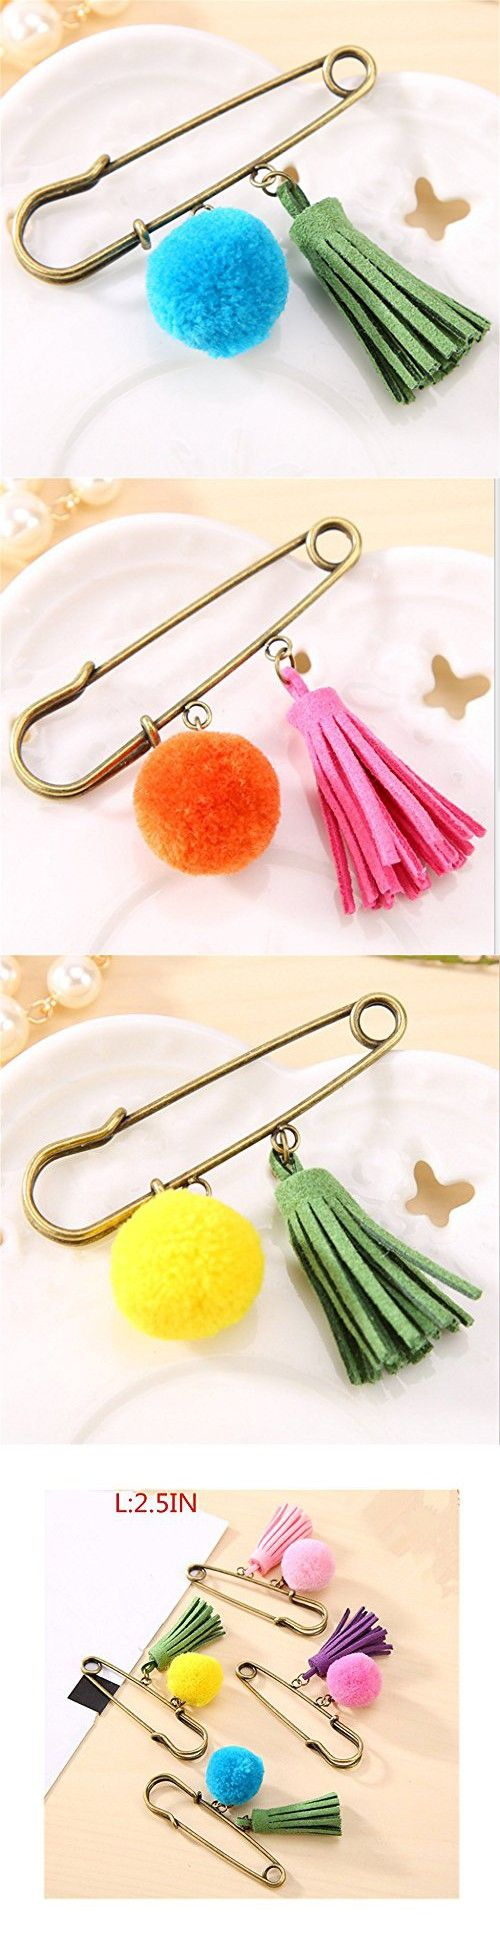 25 unique large safety pins ideas on pinterest post apocalyptic lilith li sweet wool ball temperament tassels large safety pin 4pcs setymq amipublicfo Gallery